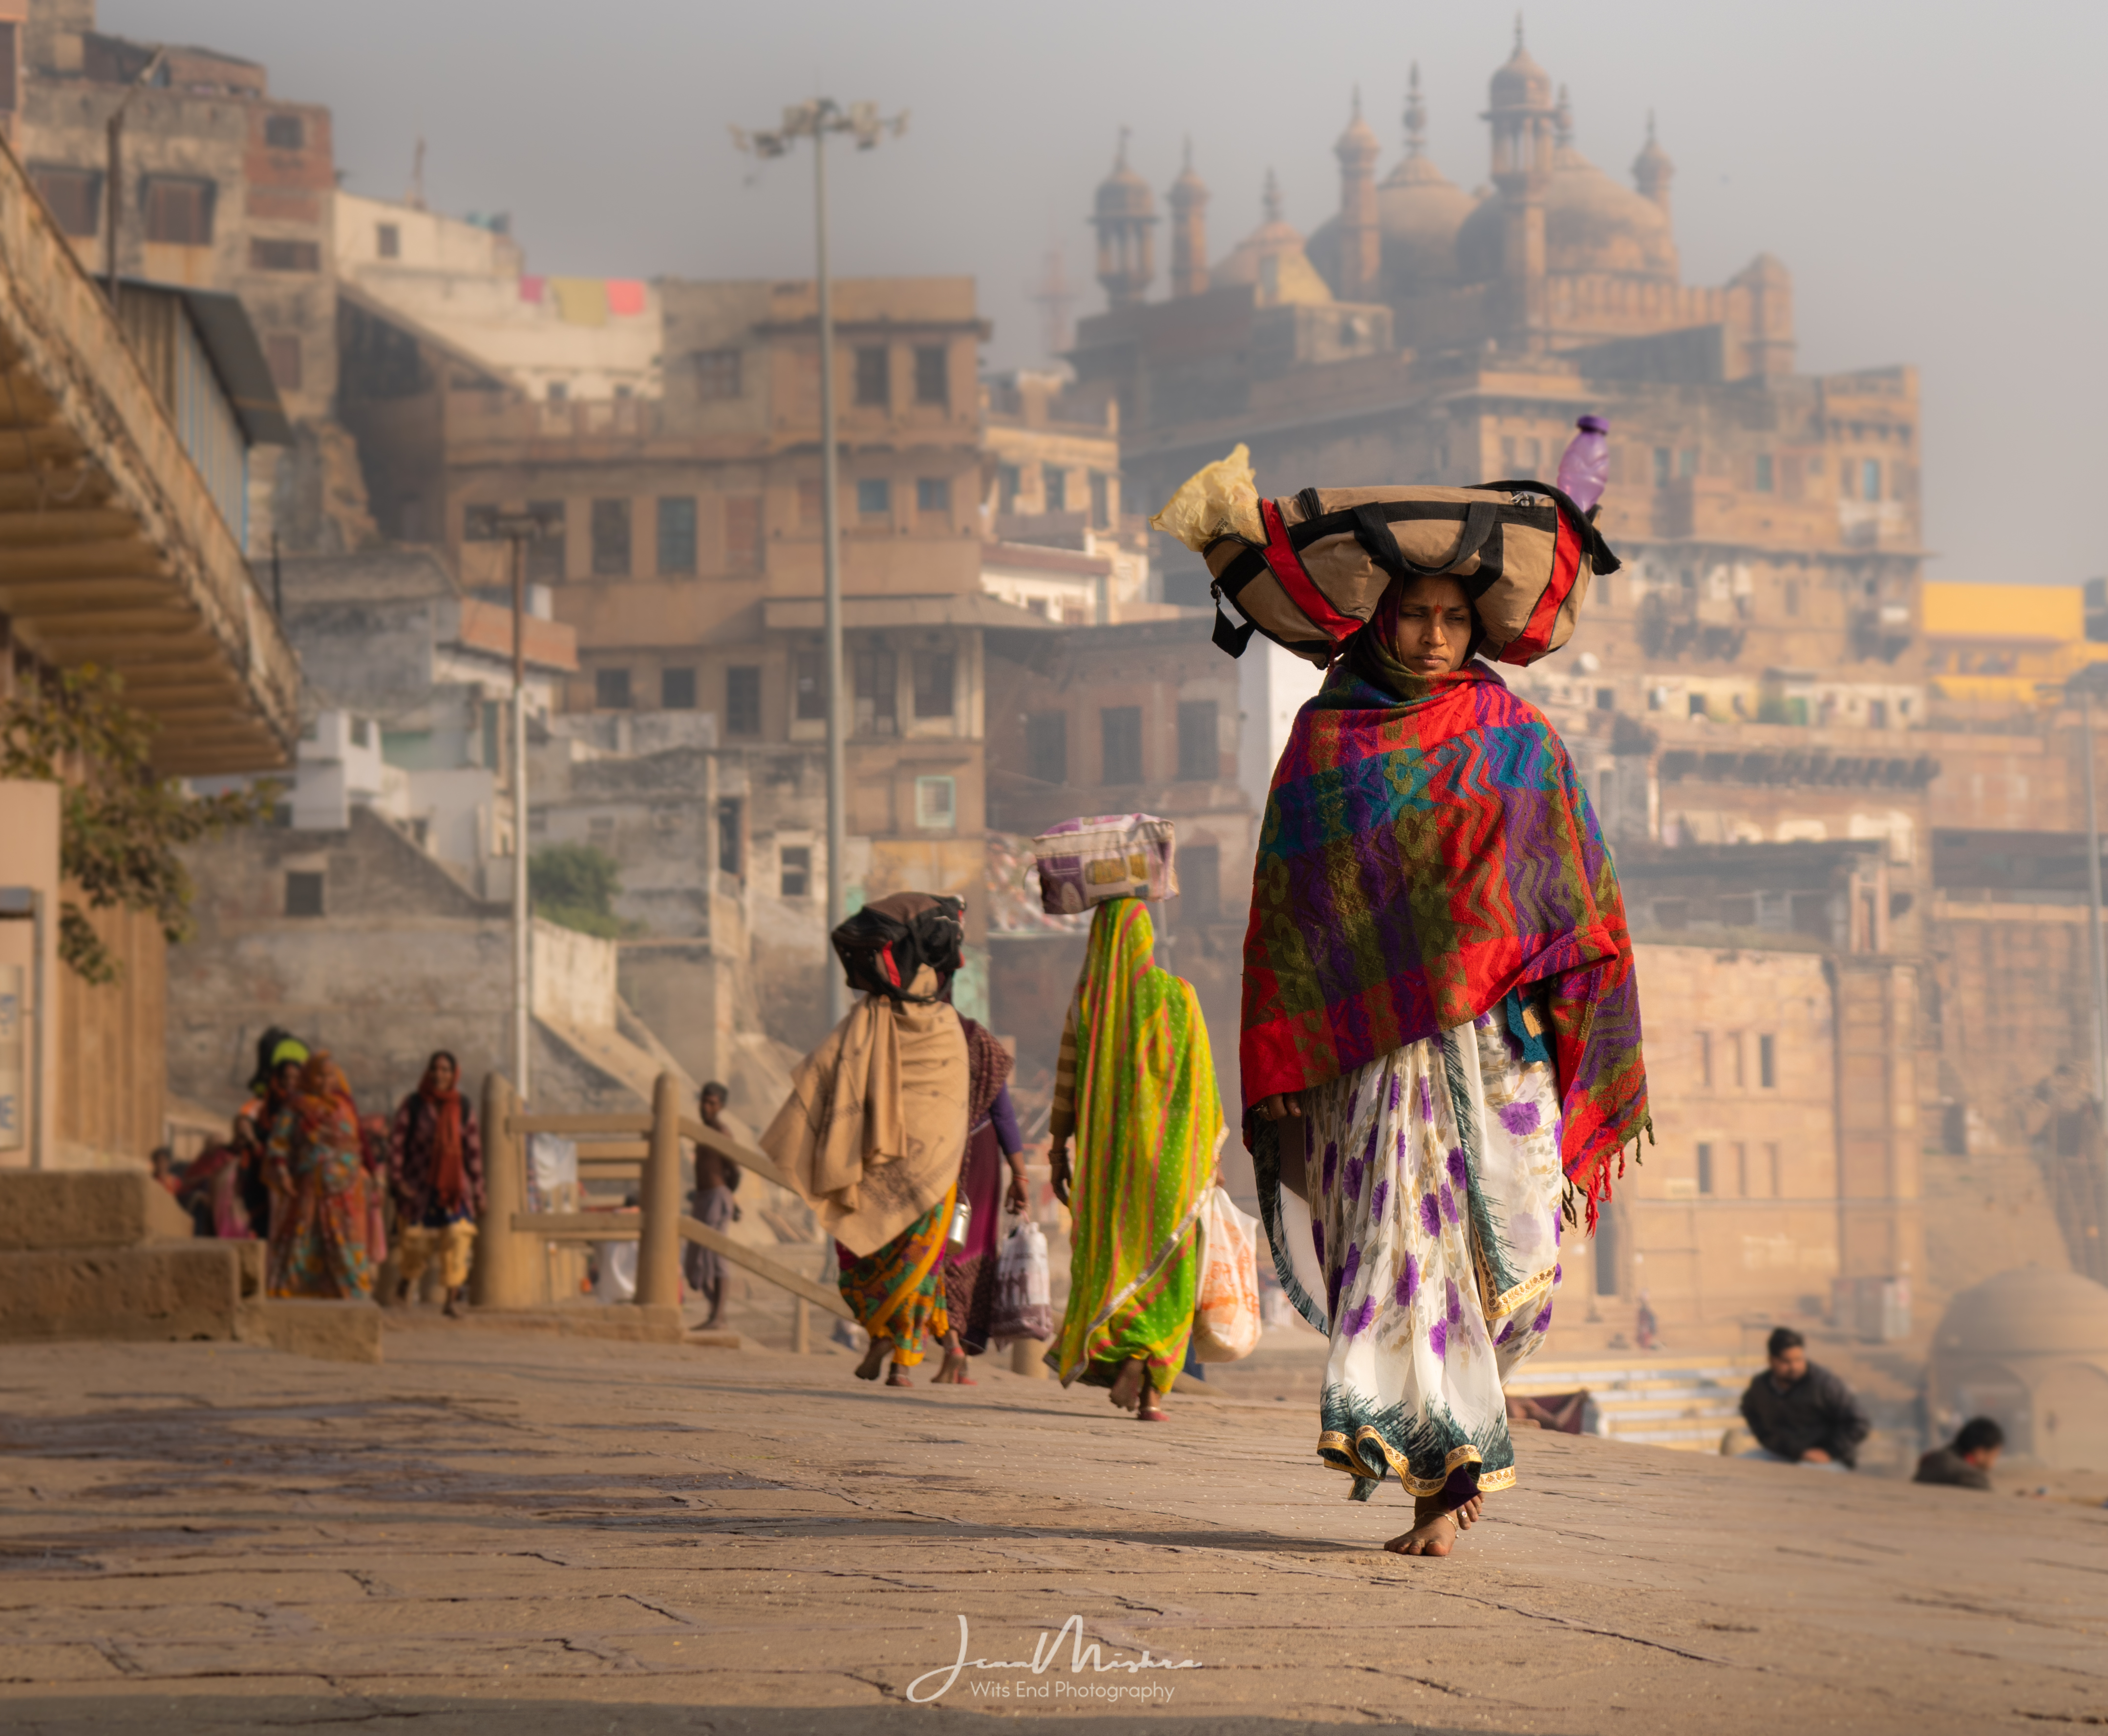 Woman walking the ghats in Varanasi India